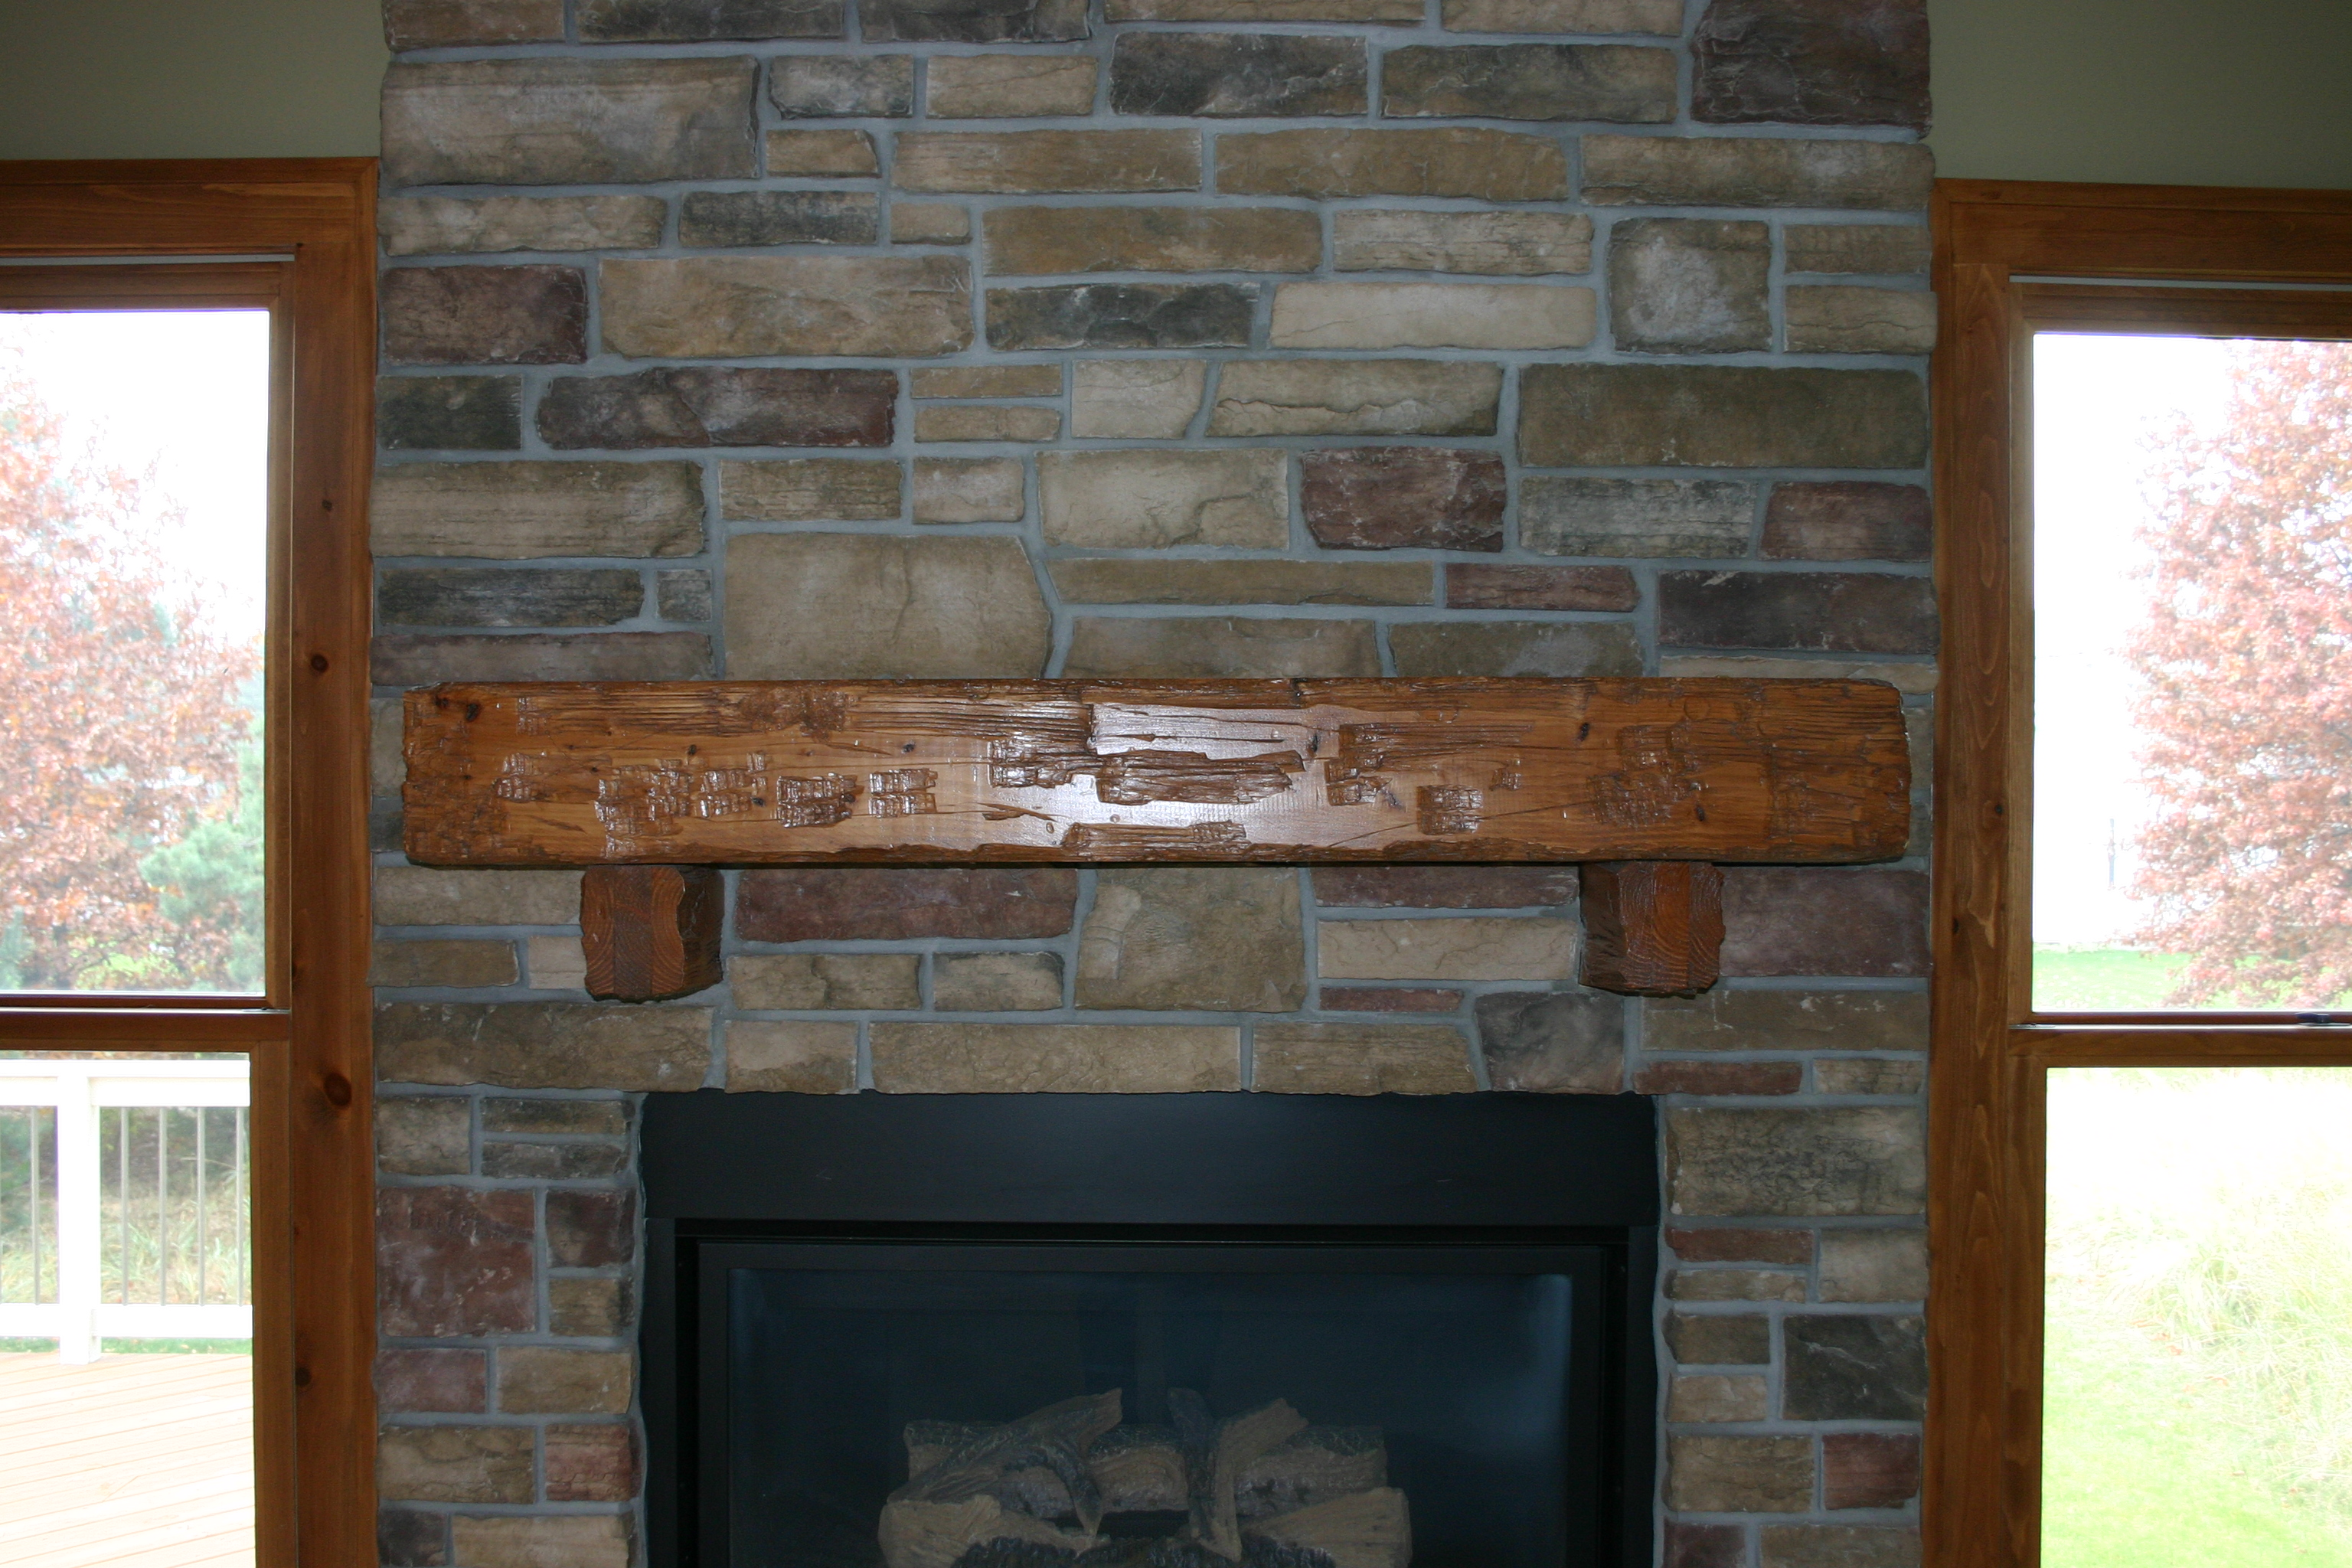 fireplace mantel beam. fireplace mantel wood beam Stone Fireplace Mantel Weatherwax Construction  Wood Beam